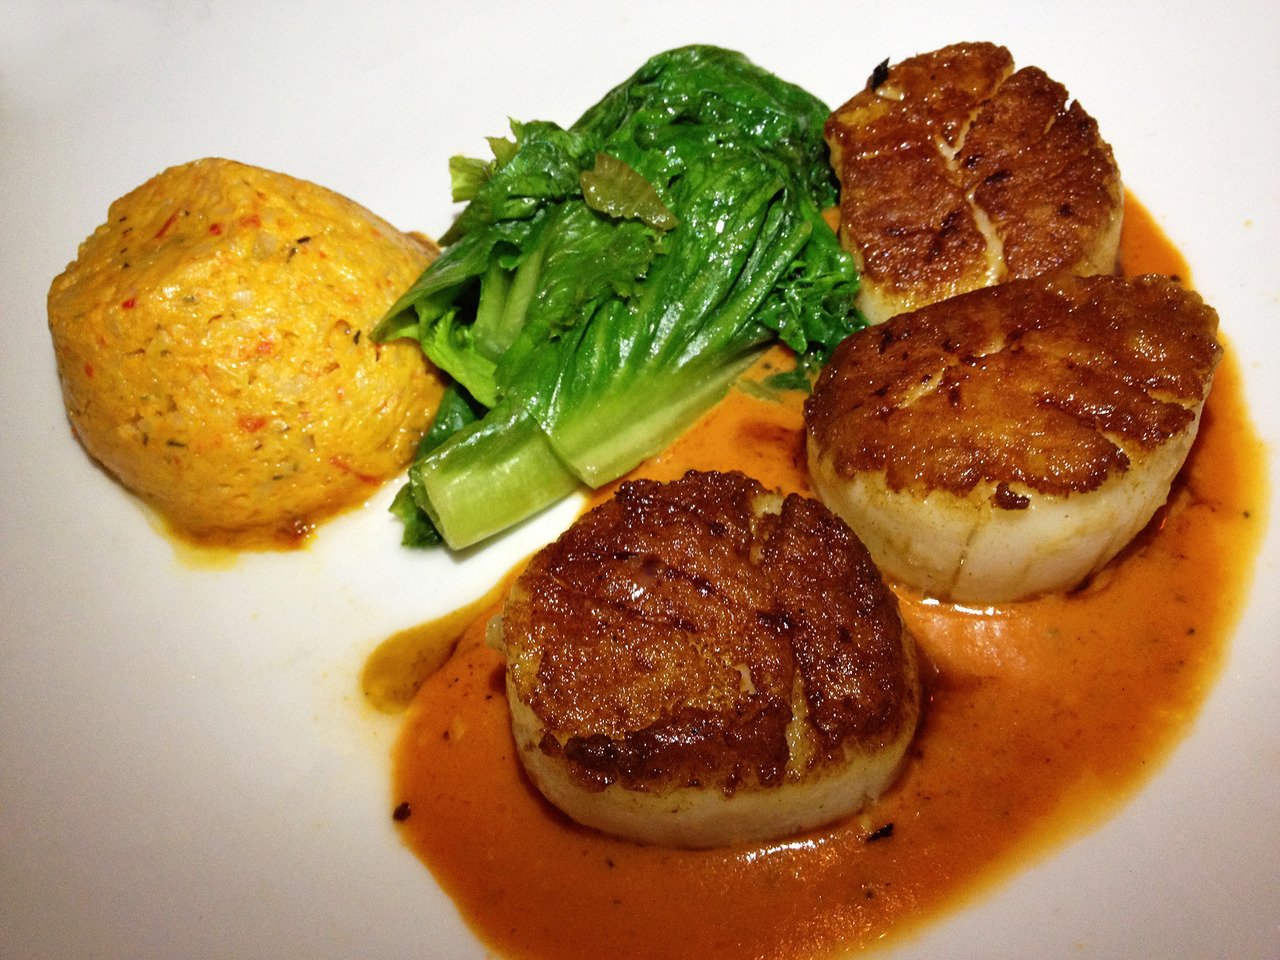 Scallops cooked to absolute perfection in a tomato truffle butter dressing with a side of bok choy and some kind of yummy savory rice pudding from Passion Fish. -Gastrodamus